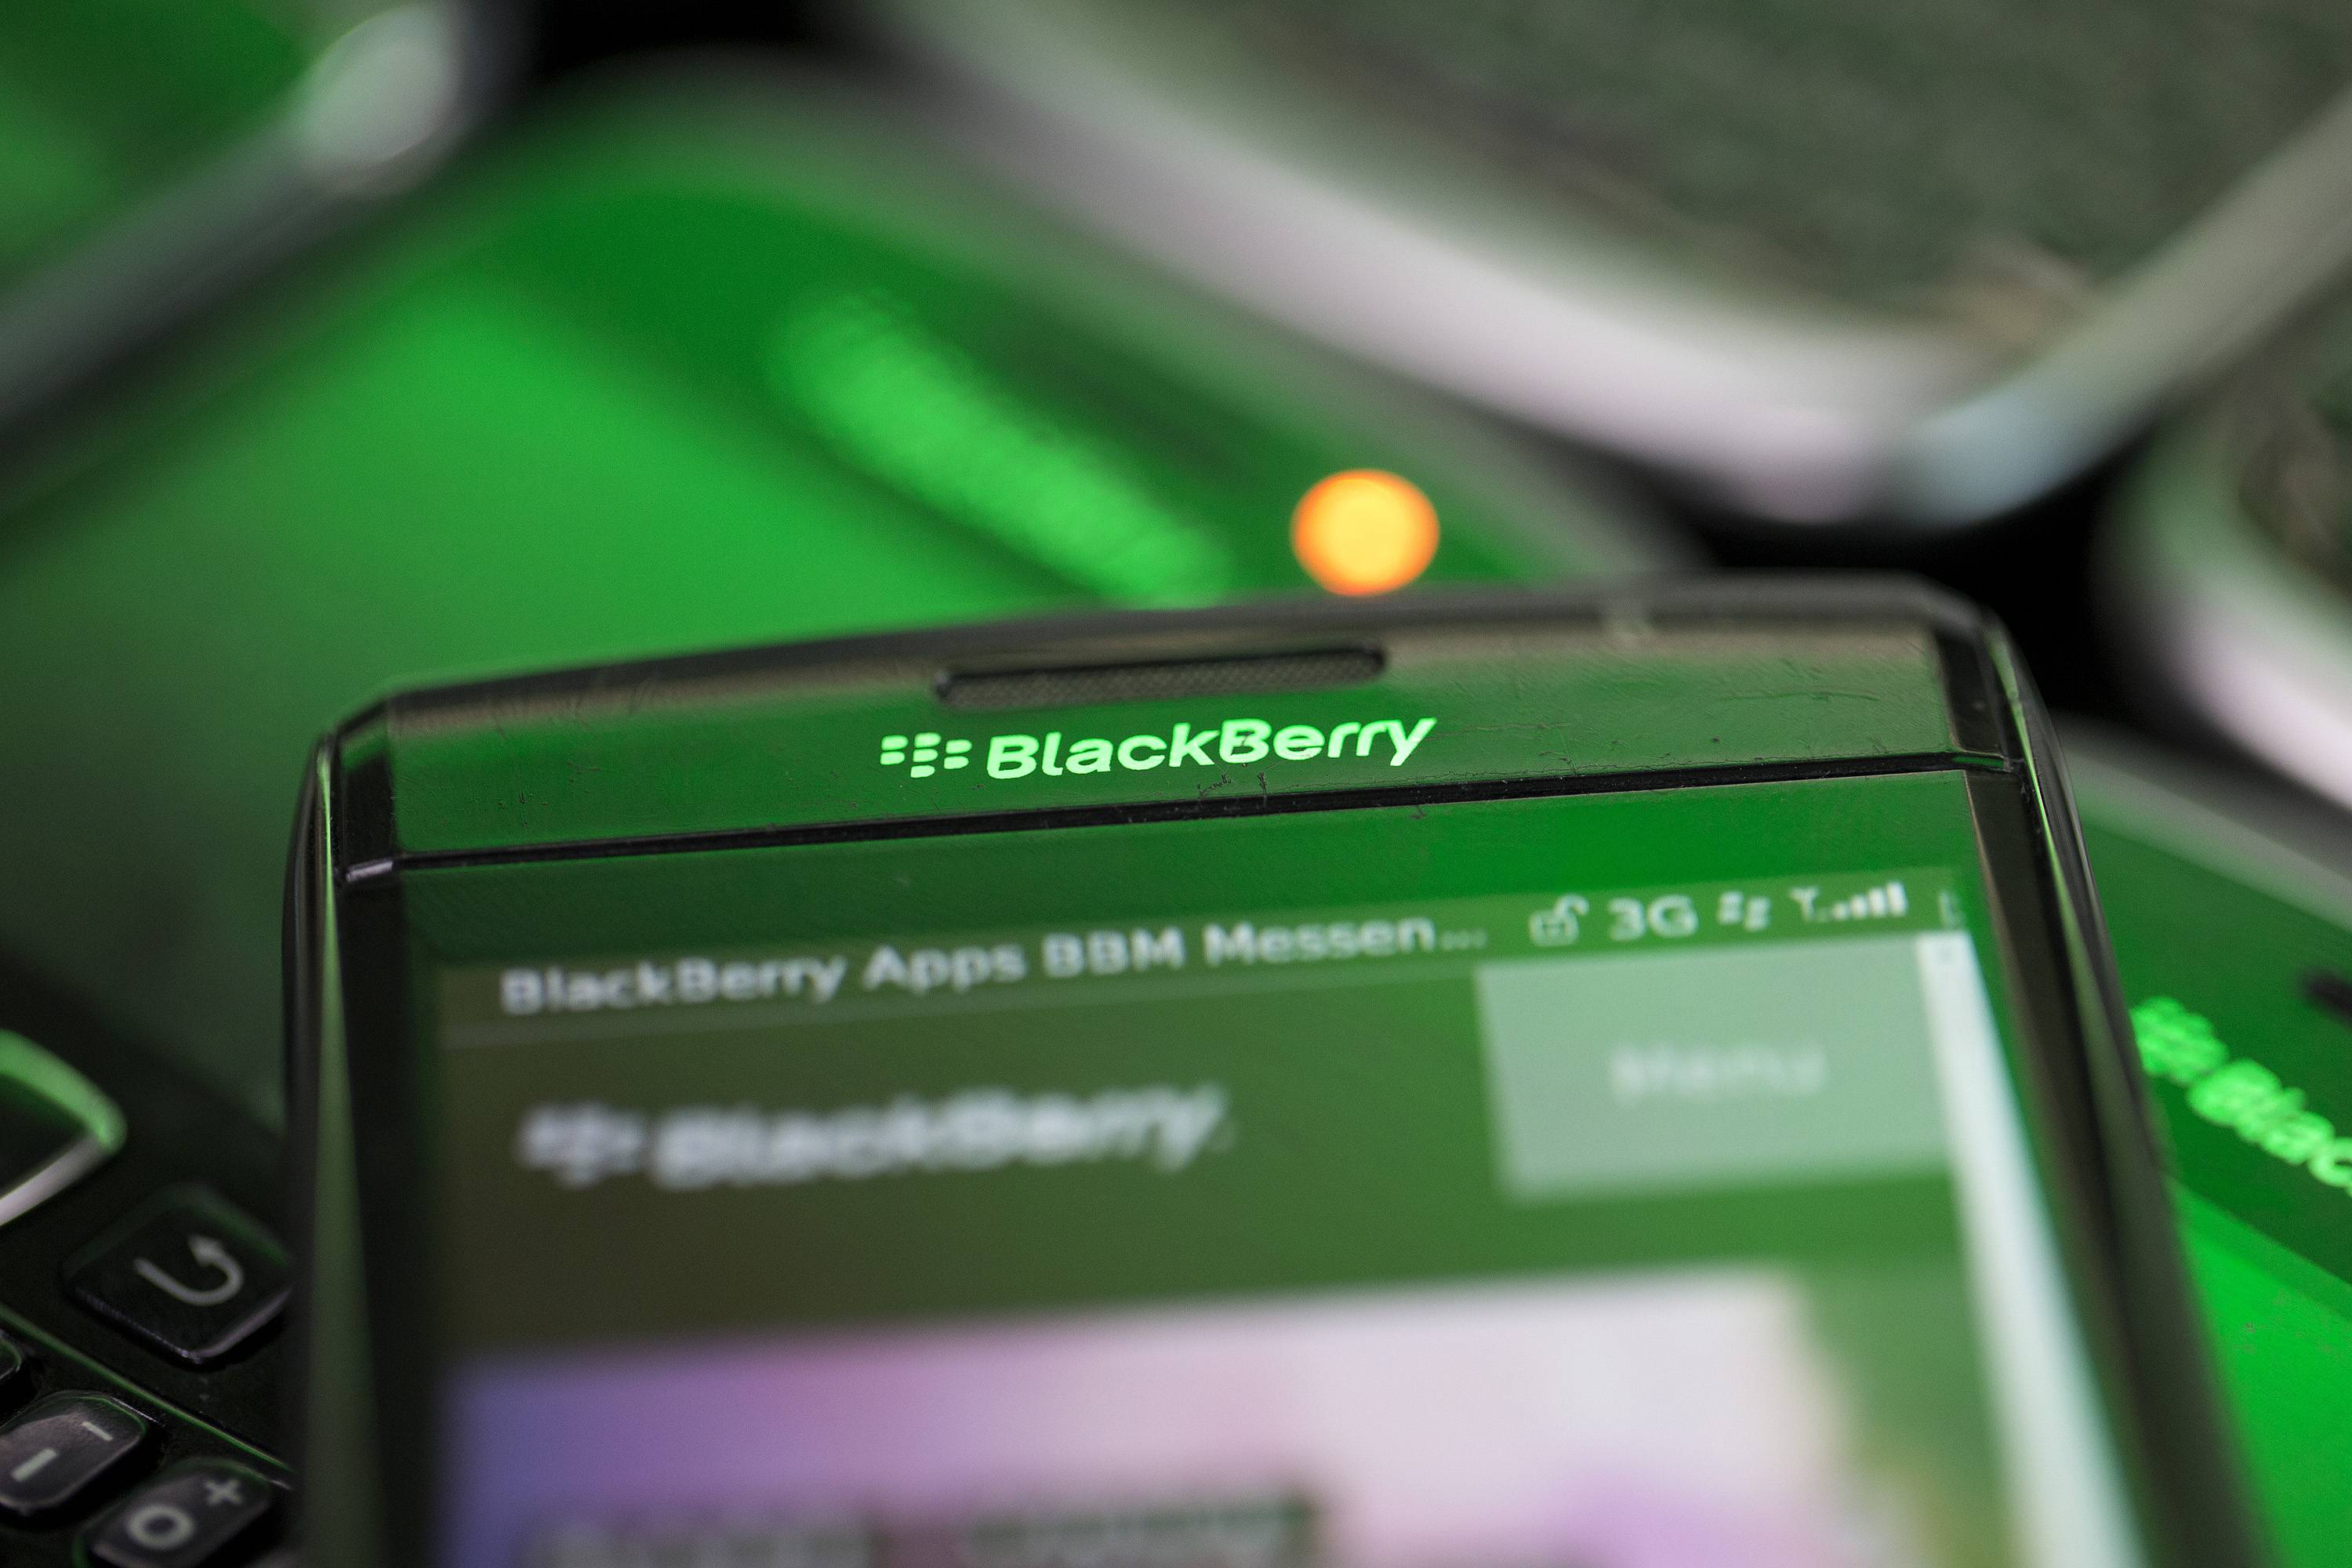 What's behind the return of BlackBerry and Nokia phones?